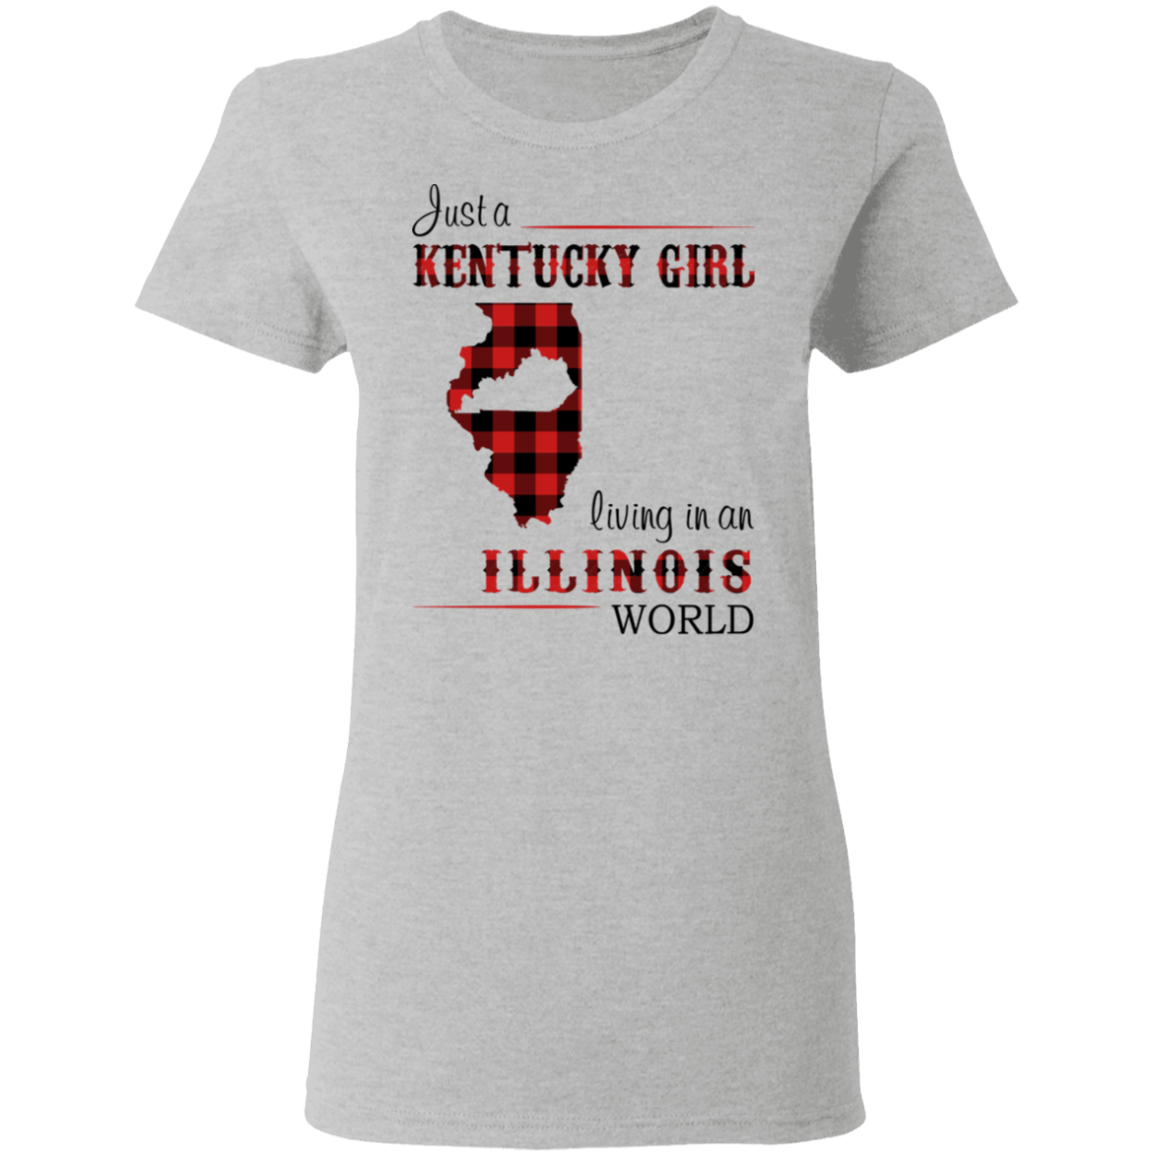 JUST A KENTUCKY GIRL LIVING IN AN ILLINOIS WORLD